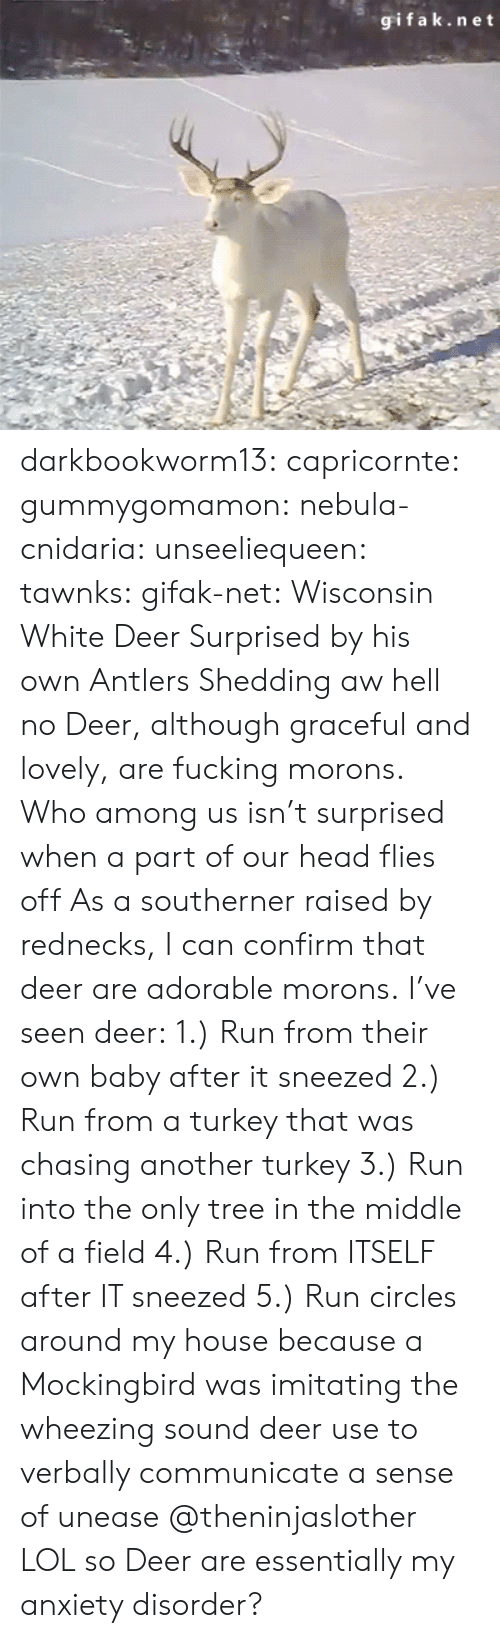 Gifak: gifak.net darkbookworm13:  capricornte:  gummygomamon:  nebula-cnidaria:  unseeliequeen:  tawnks:  gifak-net:  Wisconsin White Deer Surprised by his own Antlers Shedding   aw hell no  Deer, although graceful and lovely, are fucking morons.   Who among us isn't surprised when a part of our head flies off   As a southerner raised by rednecks, I can confirm that deer are adorable morons. I've seen deer: 1.) Run from their own baby after it sneezed 2.) Run from a turkey that was chasing another turkey 3.) Run into the only tree in the middle of a field 4.) Run from ITSELF after IT sneezed 5.) Run circles around my house because a Mockingbird was imitating the  wheezing sound deer use to verbally communicate a sense of unease   @theninjaslother  LOL so Deer are essentially my anxiety disorder?